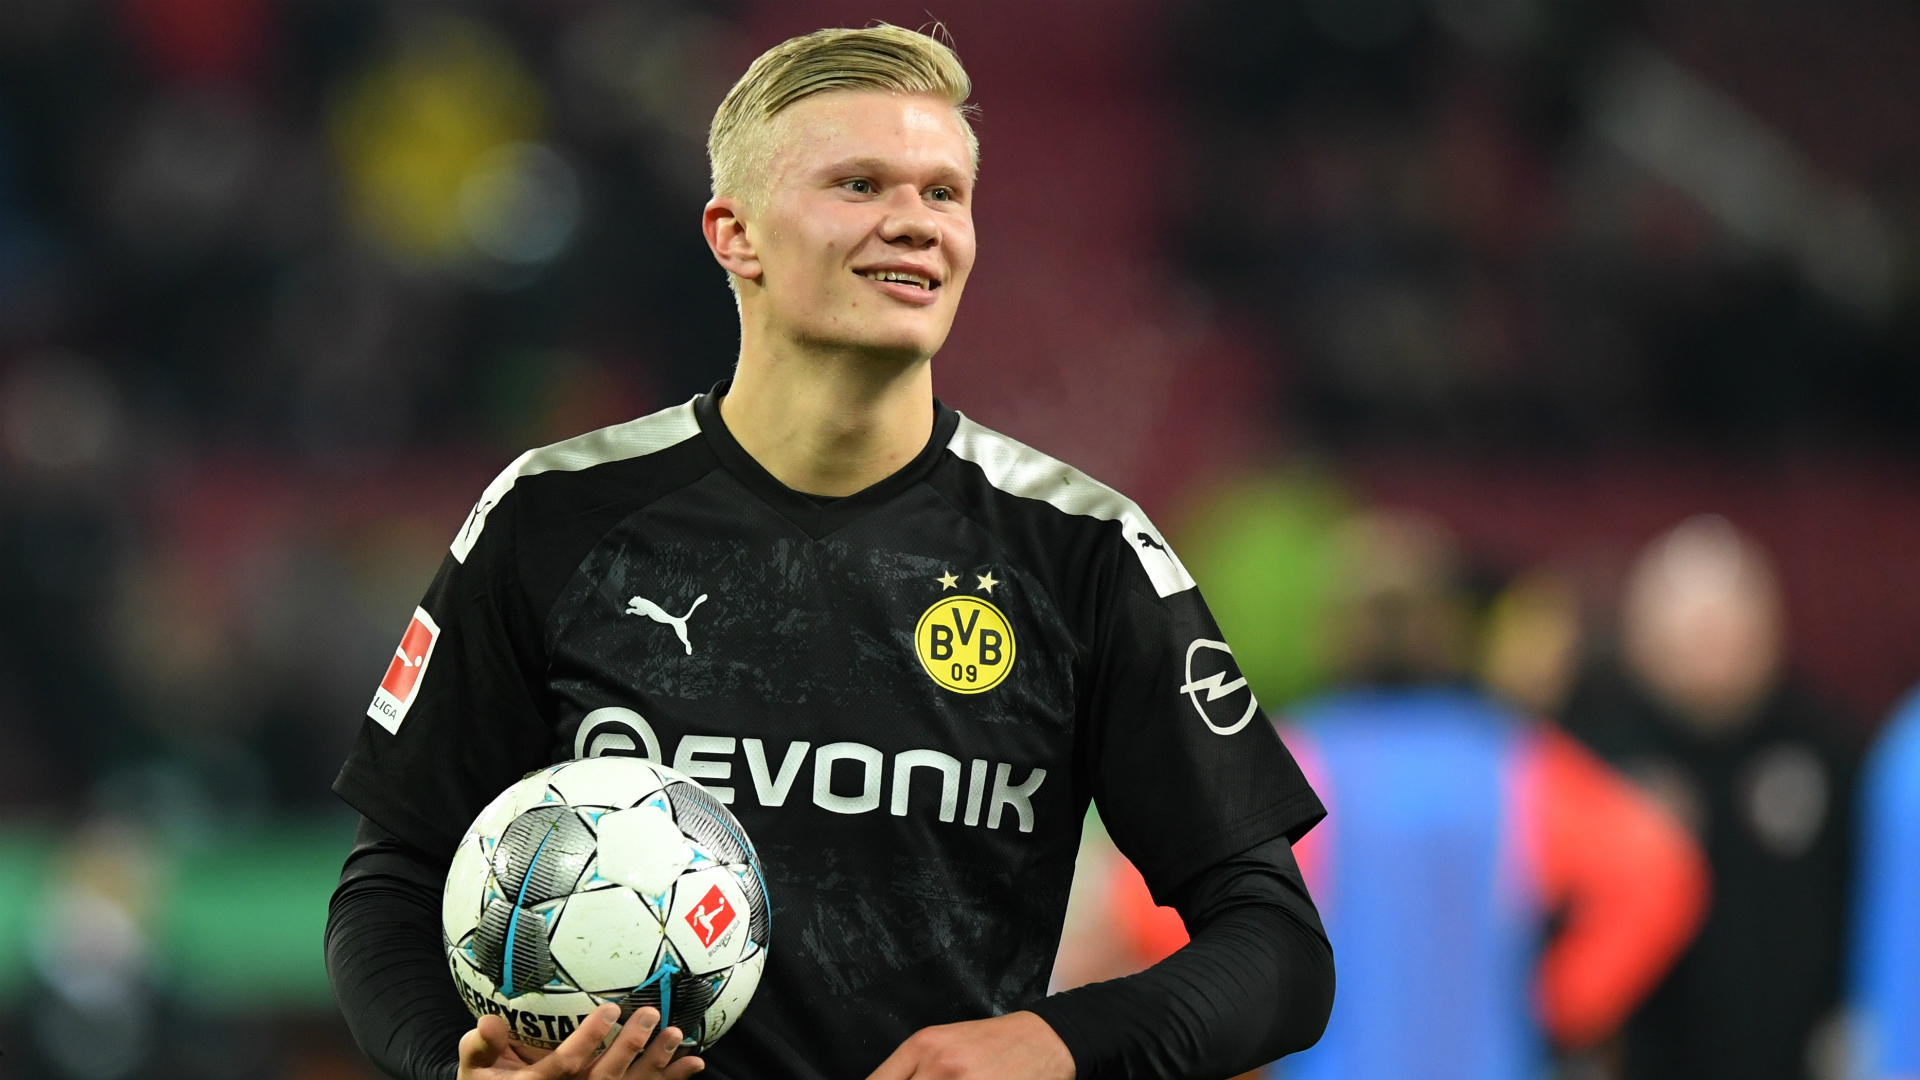 Erling Haaland debut labelled 'incredible' by Borussia Dortmund boss Lucien Favre